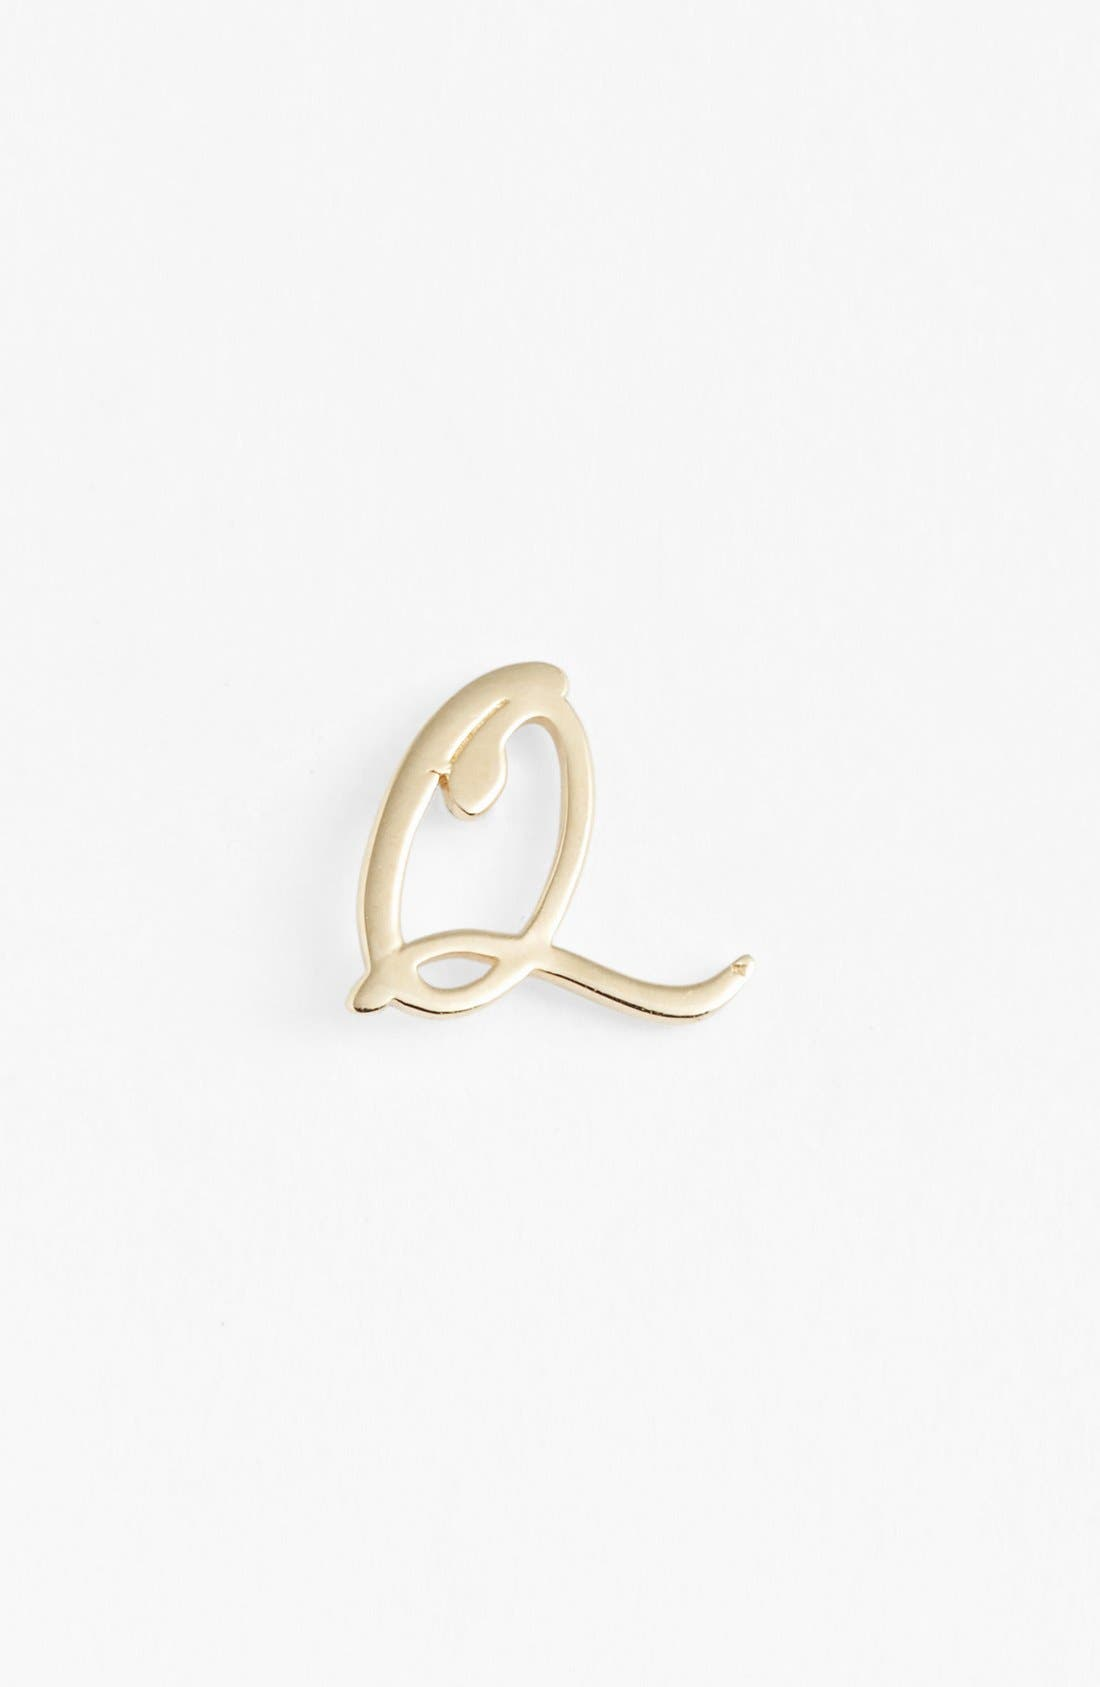 Main Image - Lana Jewelry 'Spellbound' Initial Half-Pair Stud Earrings